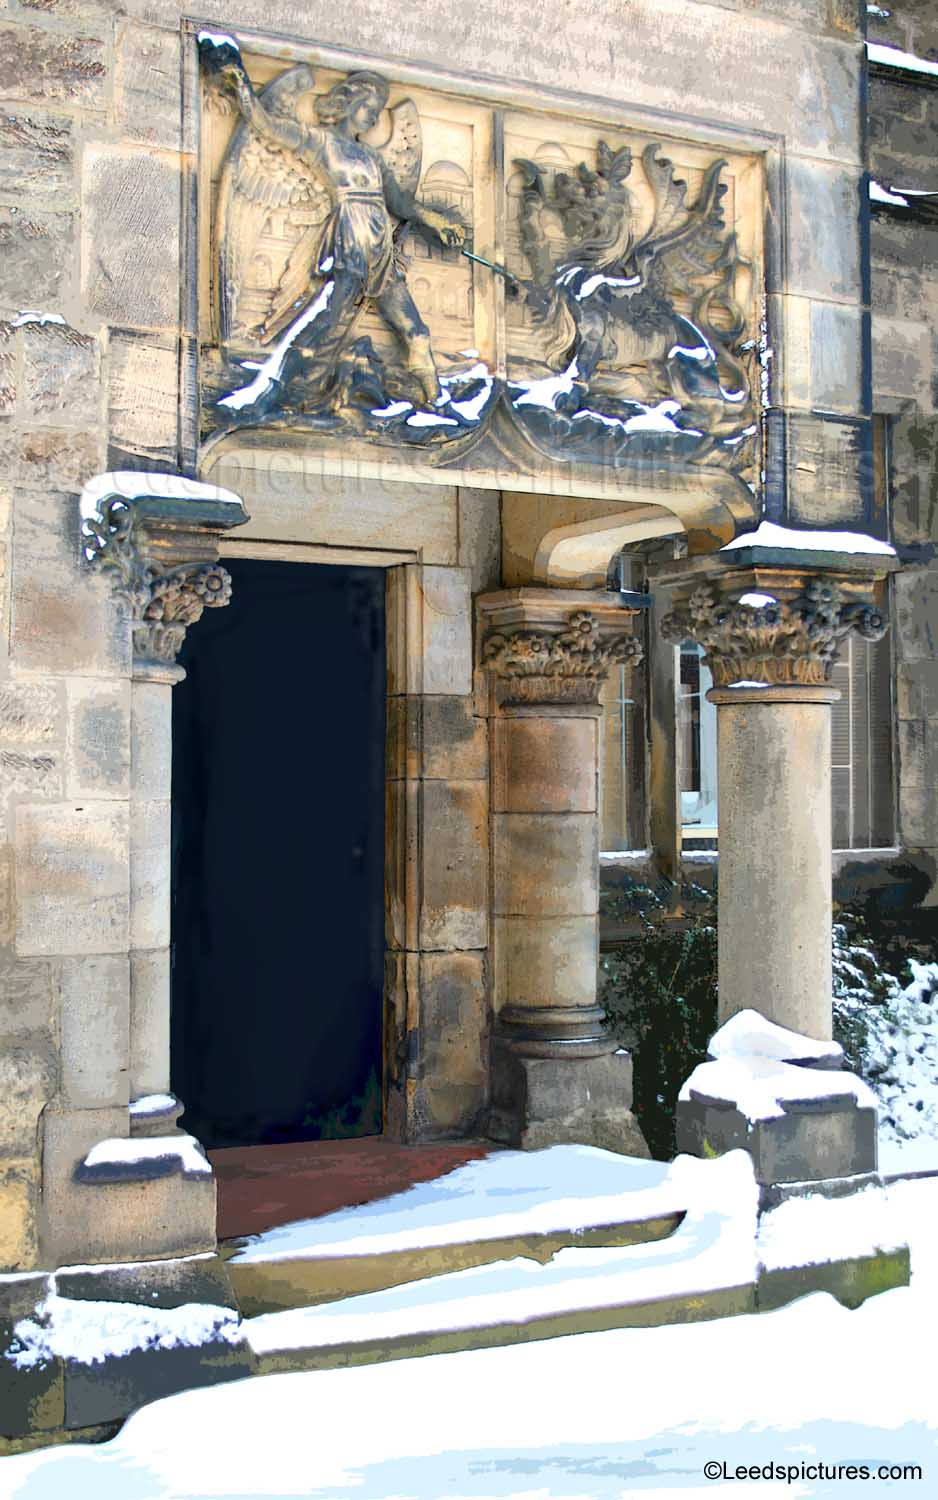 The Institute doorway on Bennett Road    An intriguing building - the snow and sunlight picks out the lovely design of the entrance